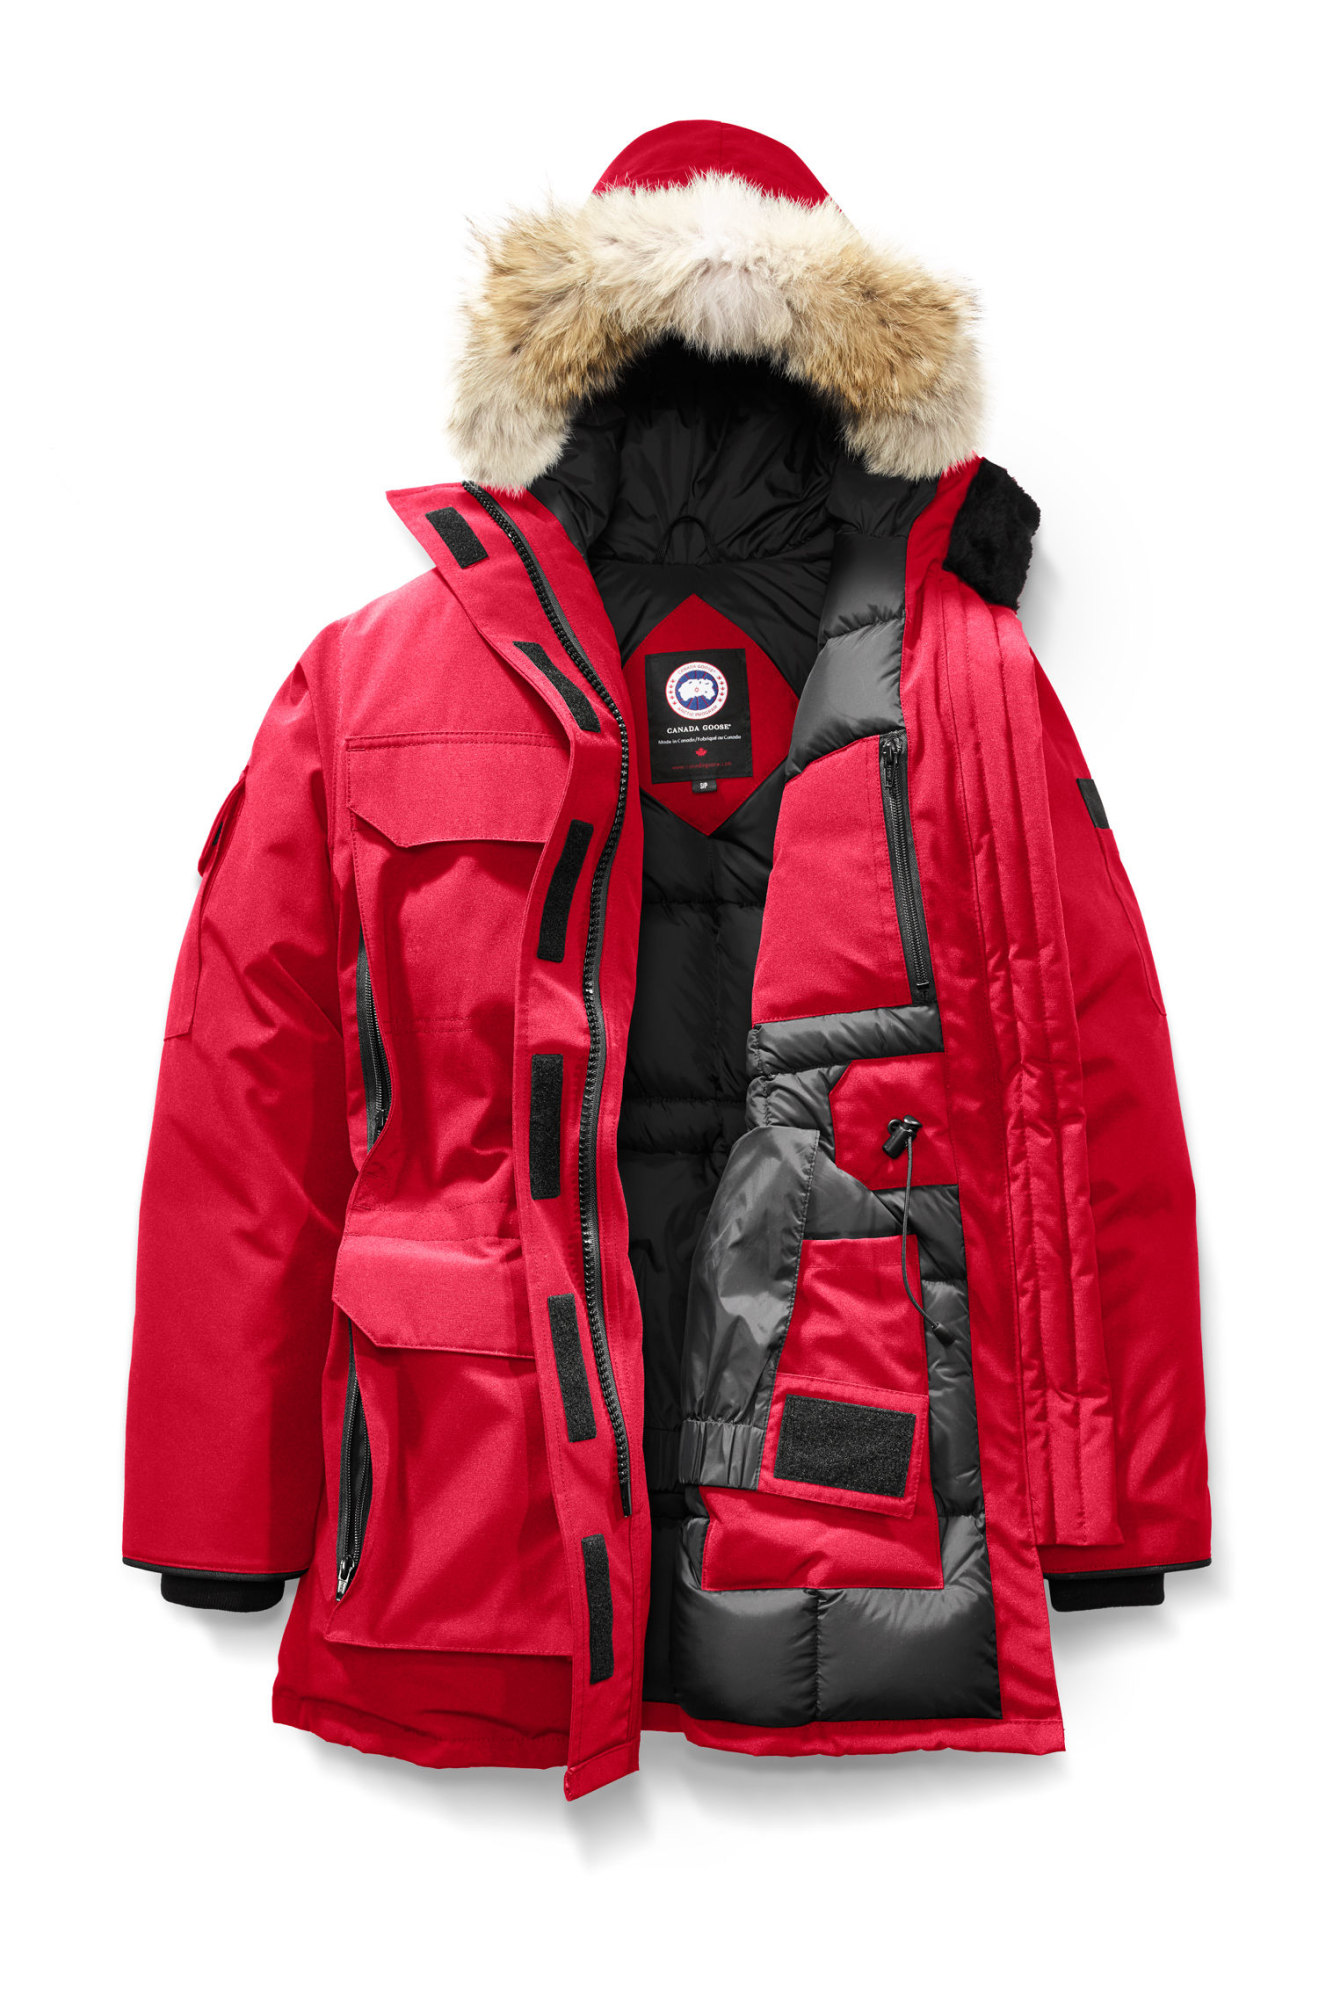 Authentic Canada Goose Expedition Parka 4565l Red Womens